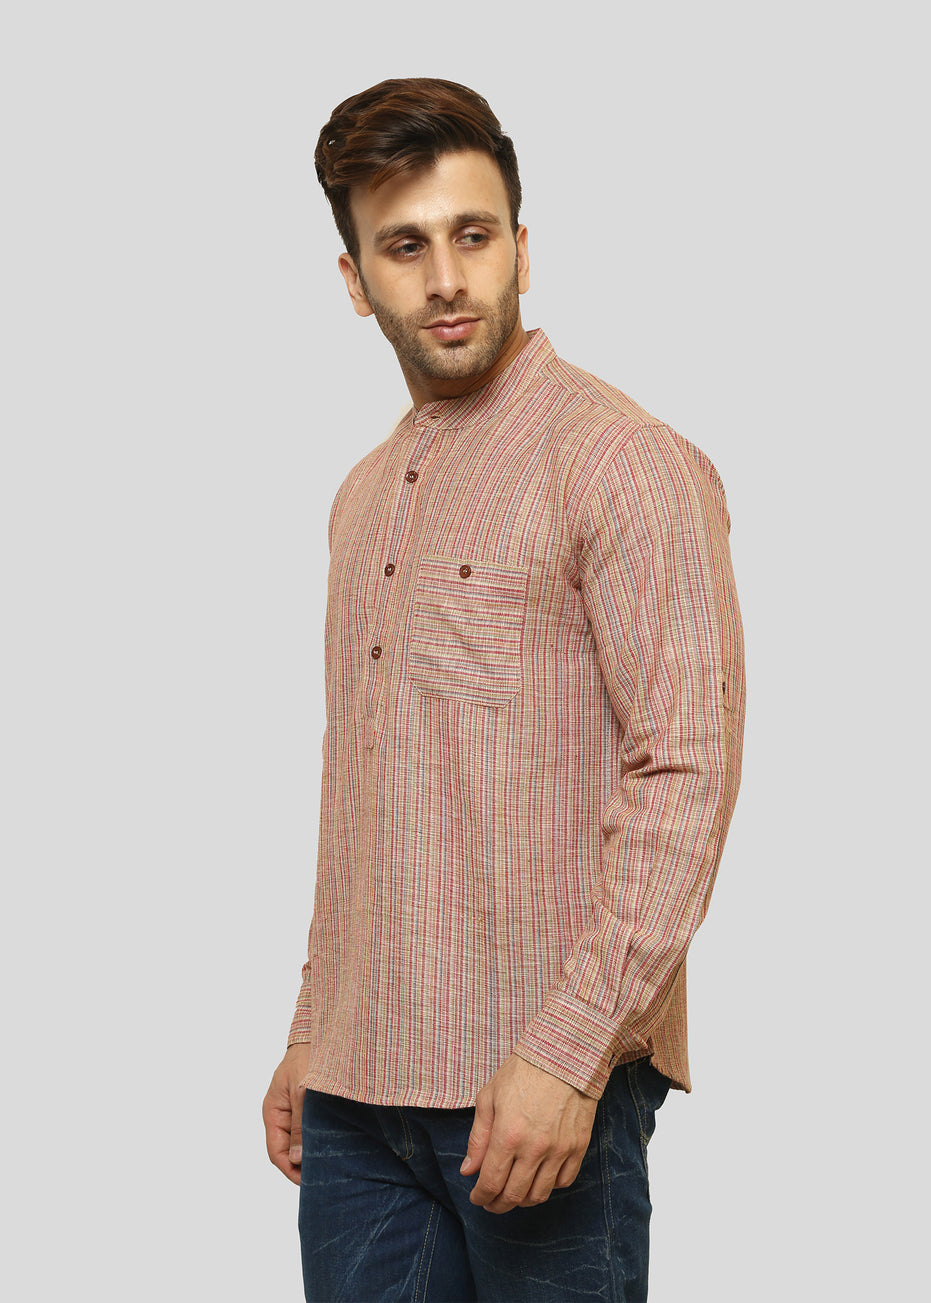 Wadaj Khadi Beige Darsh Kurta Shirt, Men Shirts, Wadaj Khadi, ihaat, [made_in_india], [handmade] - ihaat